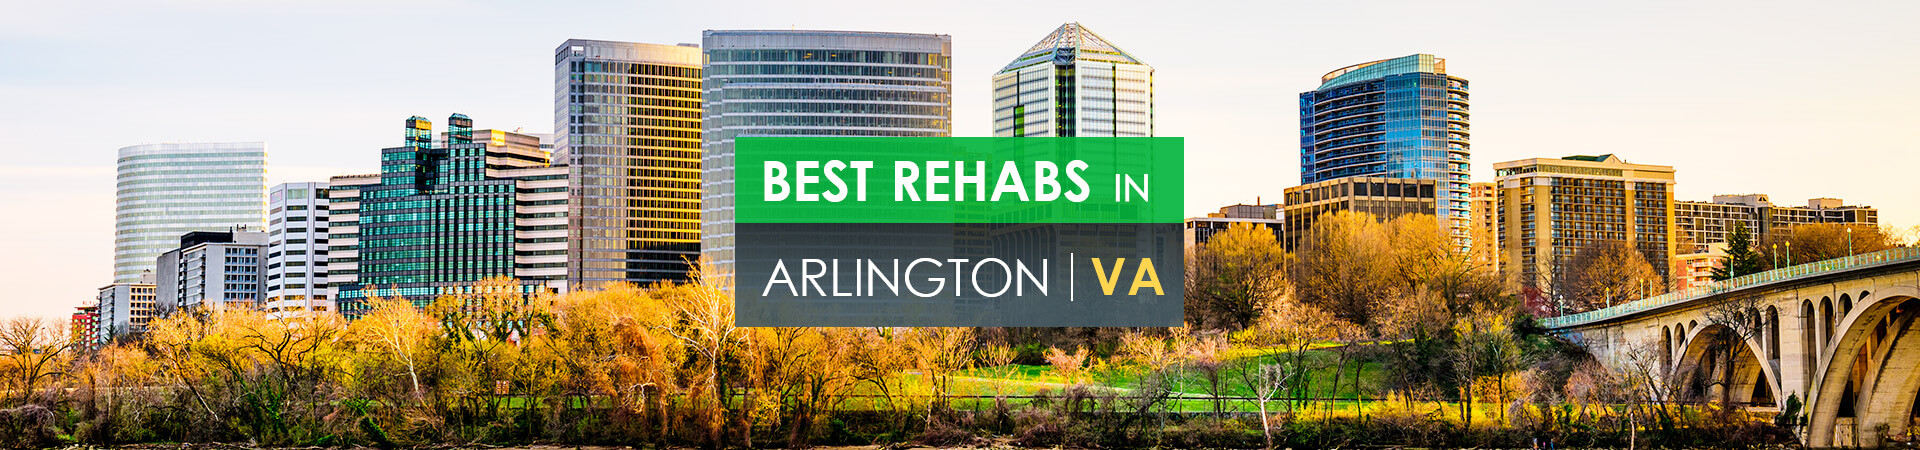 Best rehabs in Arlington, VA